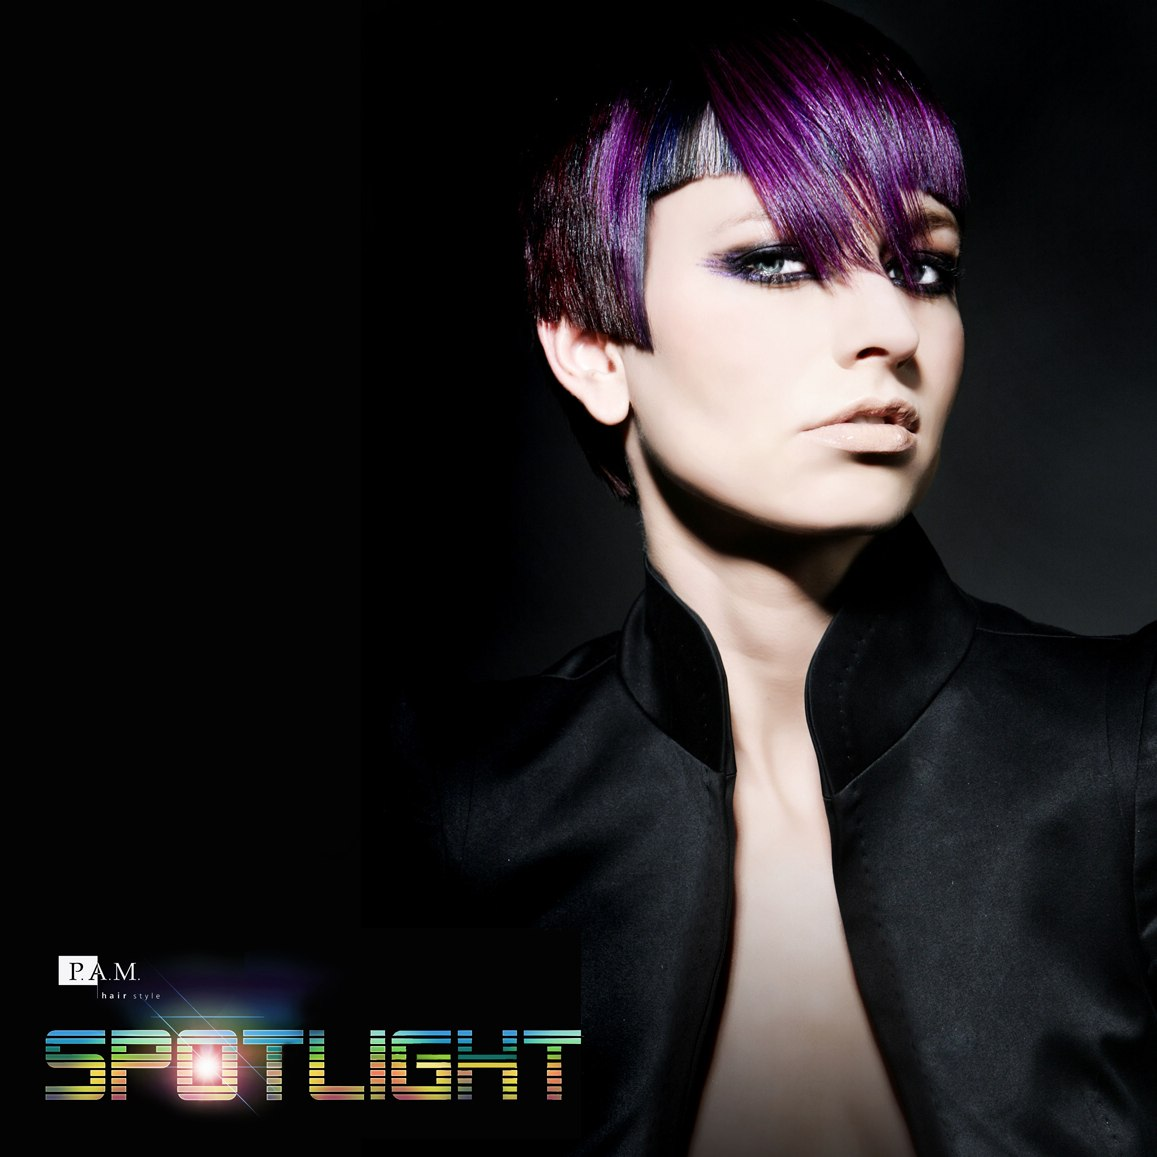 Short Haircut With A Squared Fringe And An Aubergine Hue Purple Hair